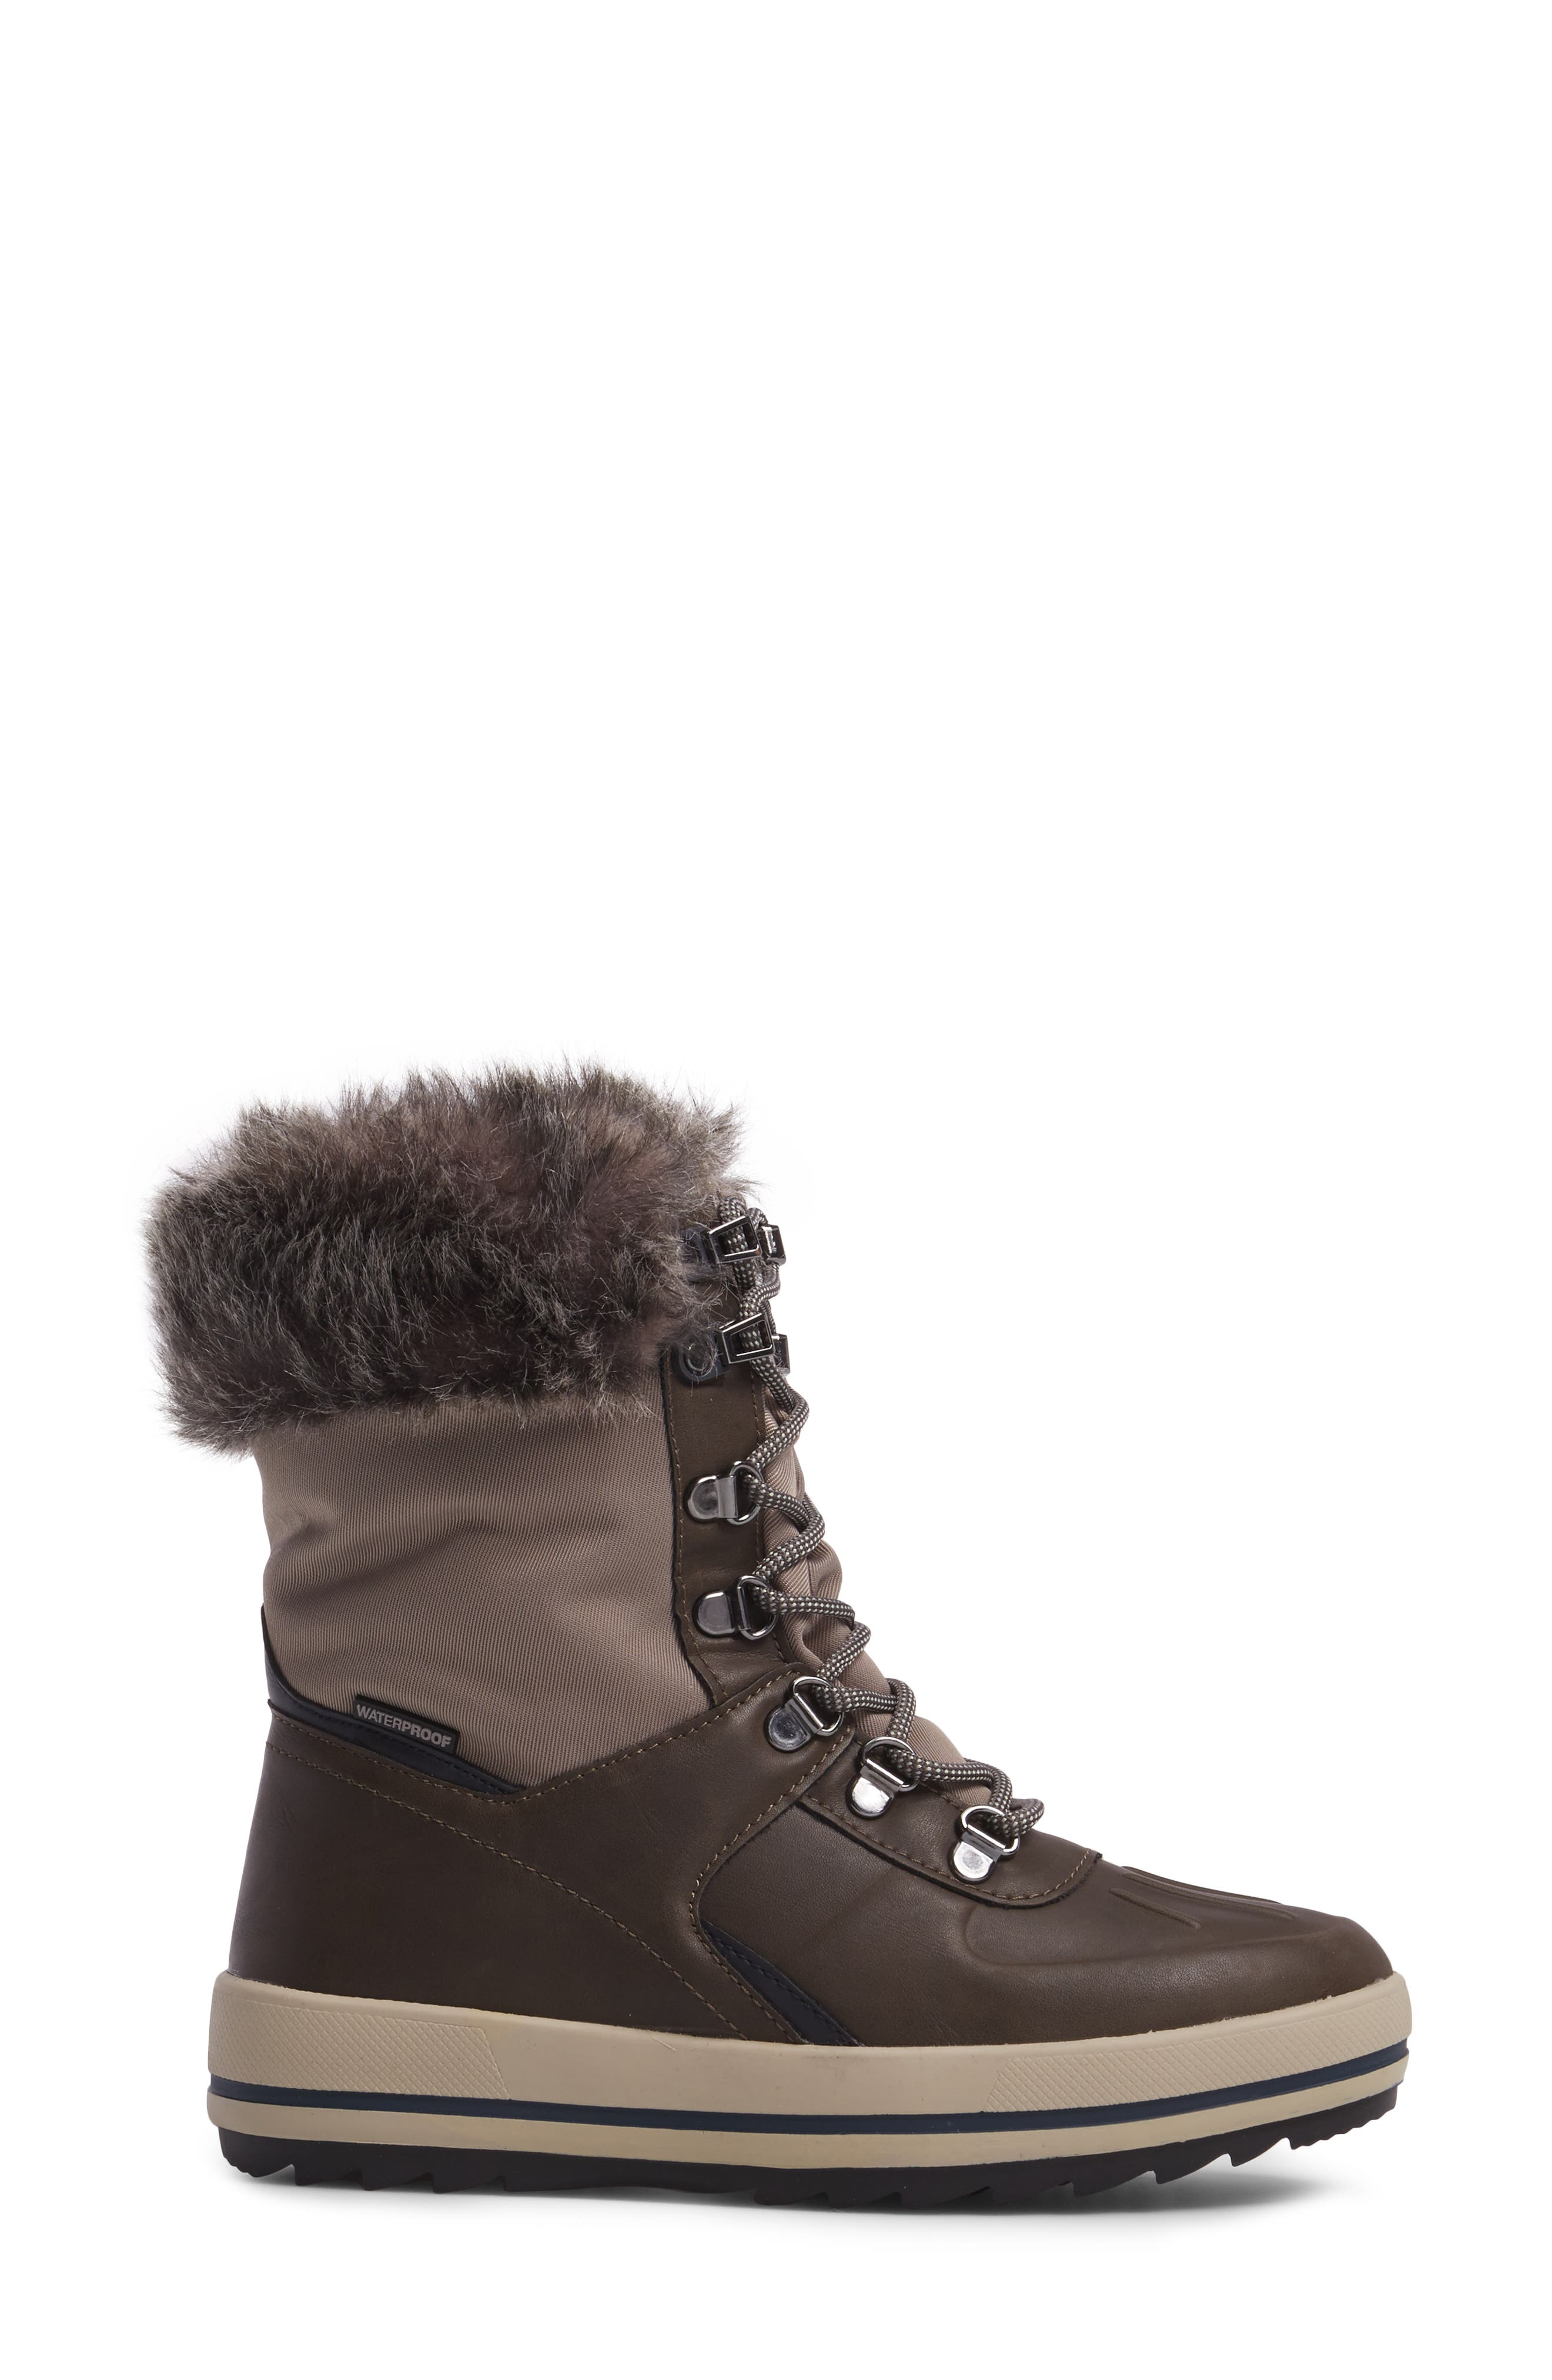 Viper Waterproof Snow Boot with Faux Fur Trim,                             Alternate thumbnail 3, color,                             Taupe/ Oatmeal